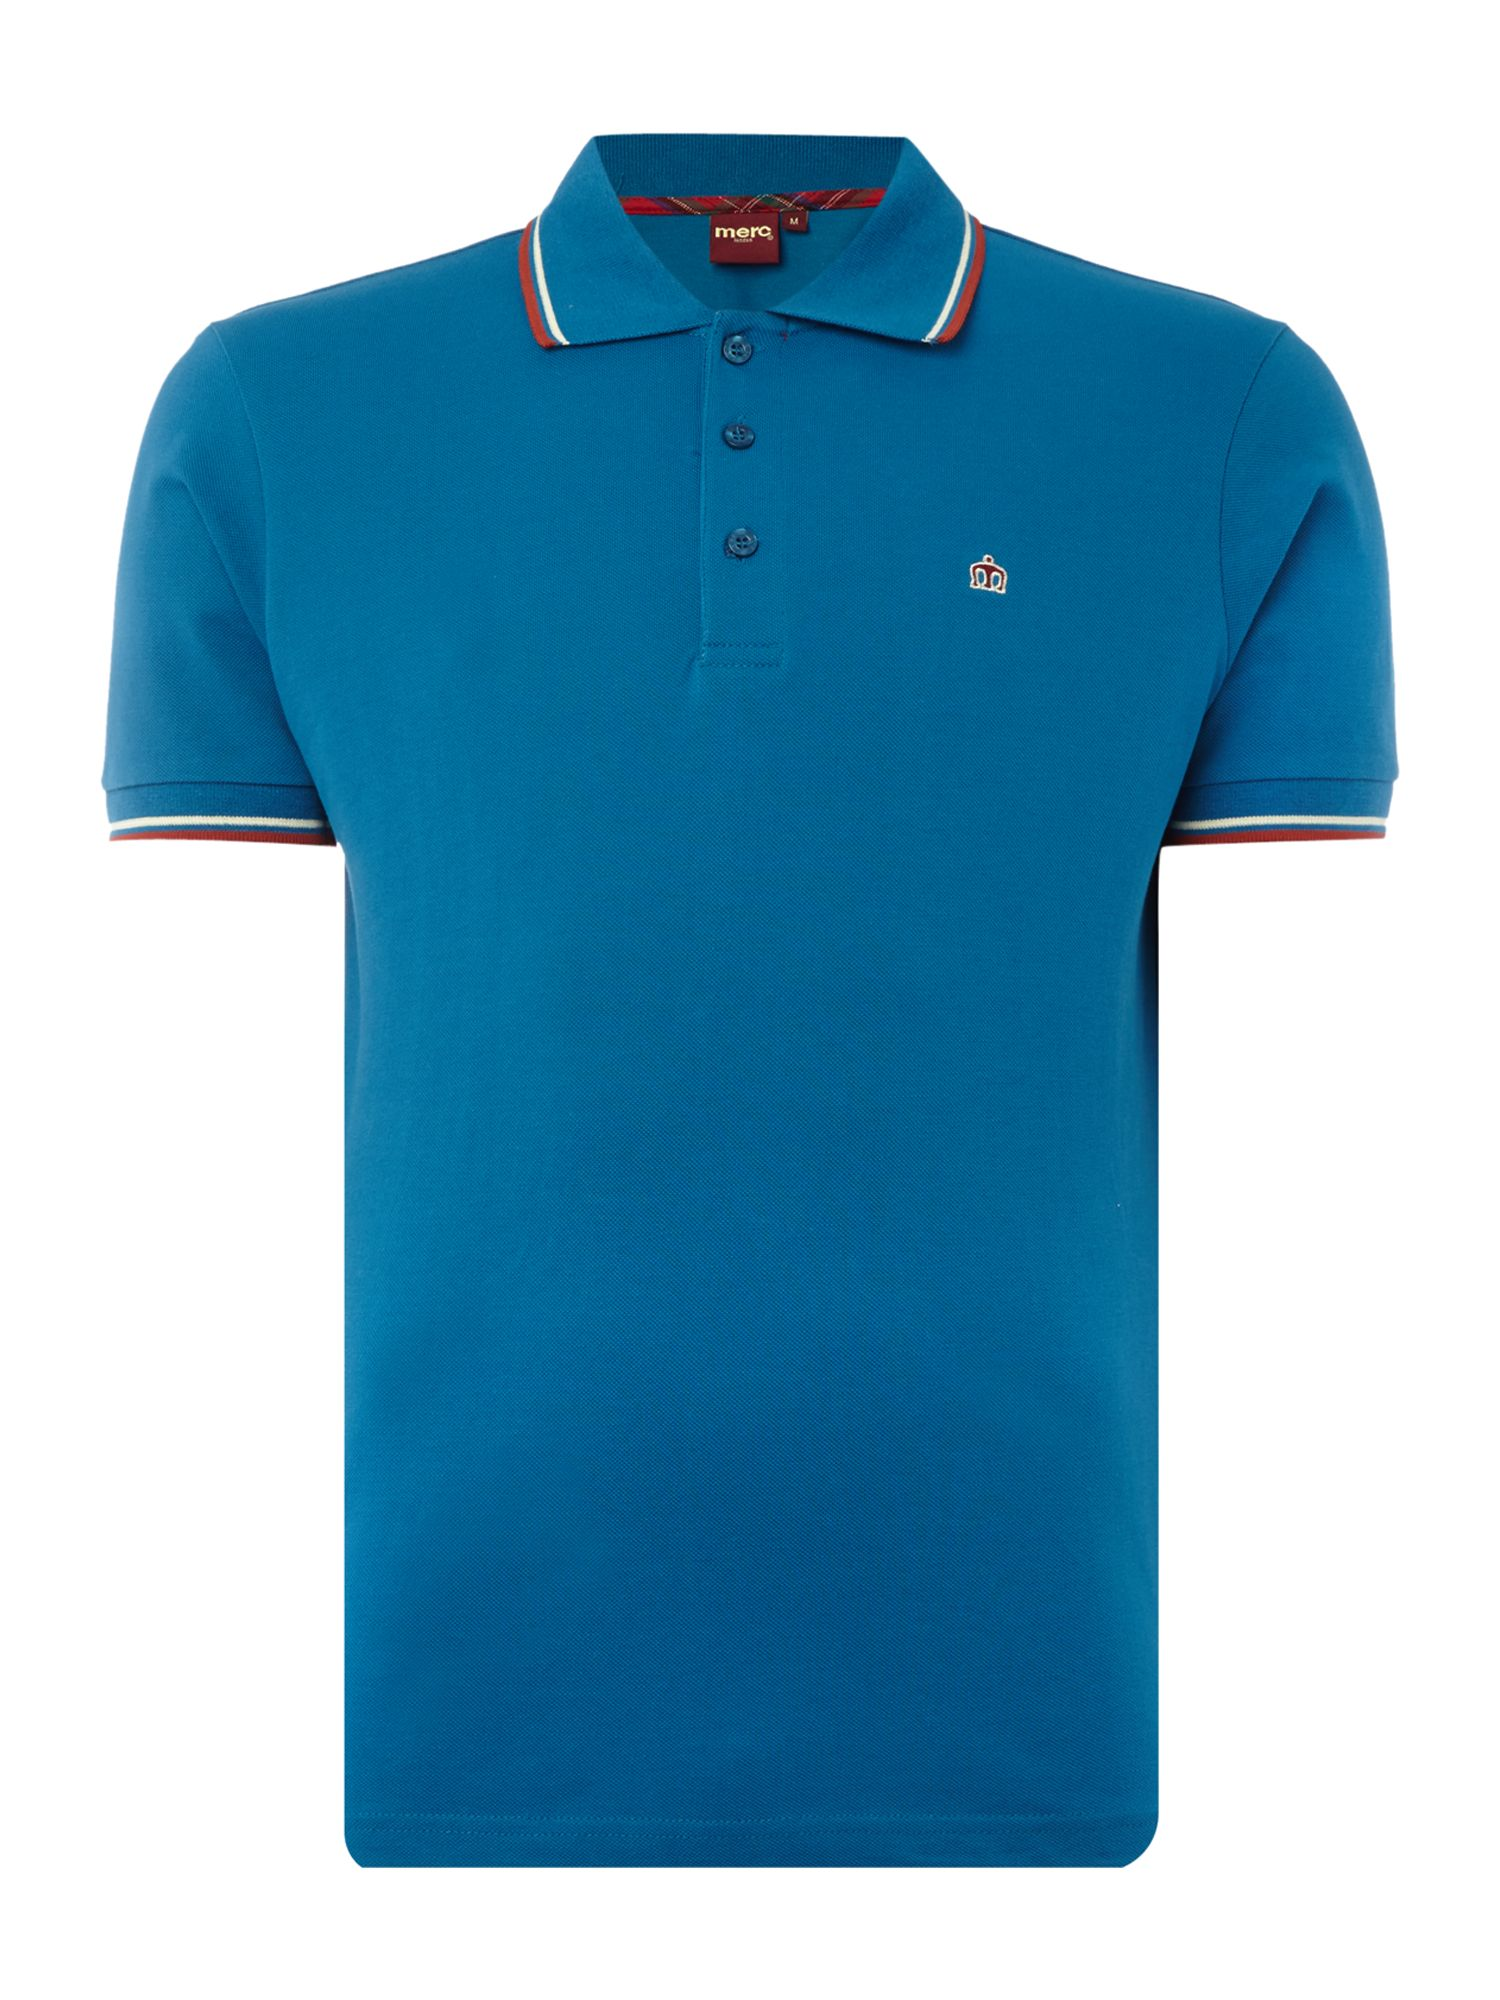 Men's Merc Card Classic Twin Tipped Polo Shirt, Bright Blue